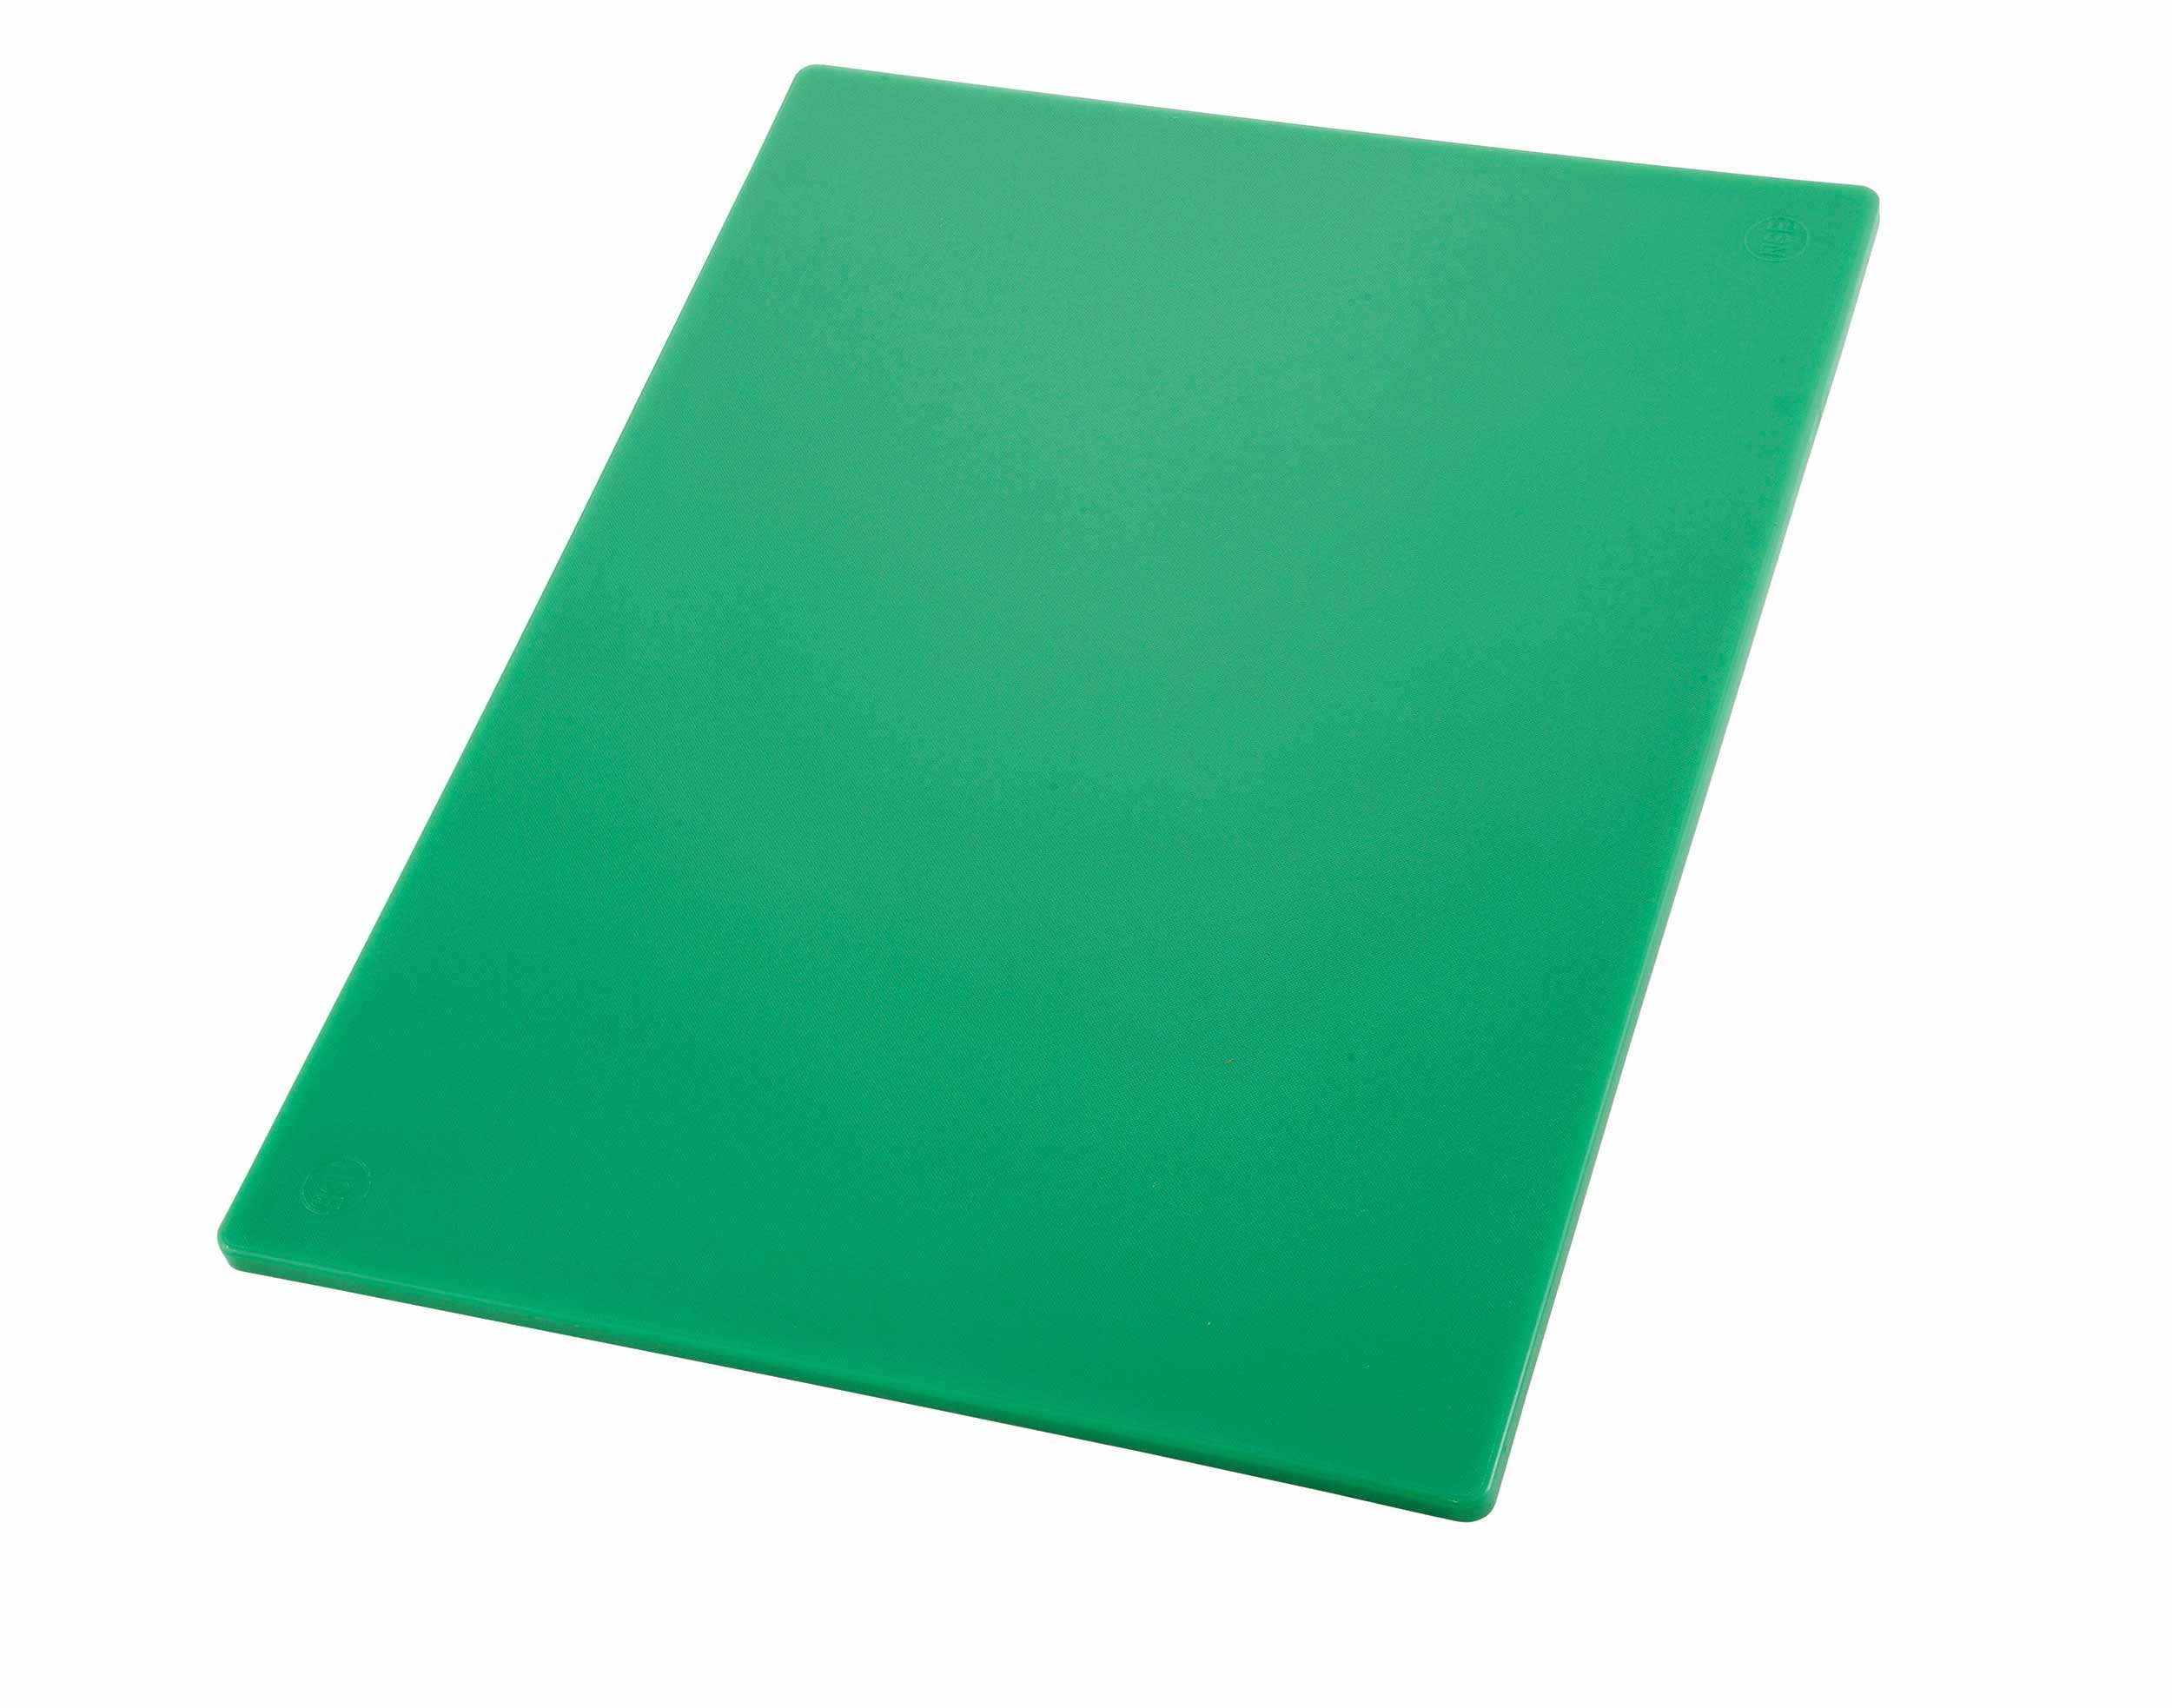 Winco Cutting Board, 12 by 18 by 1/2-Inch, Green